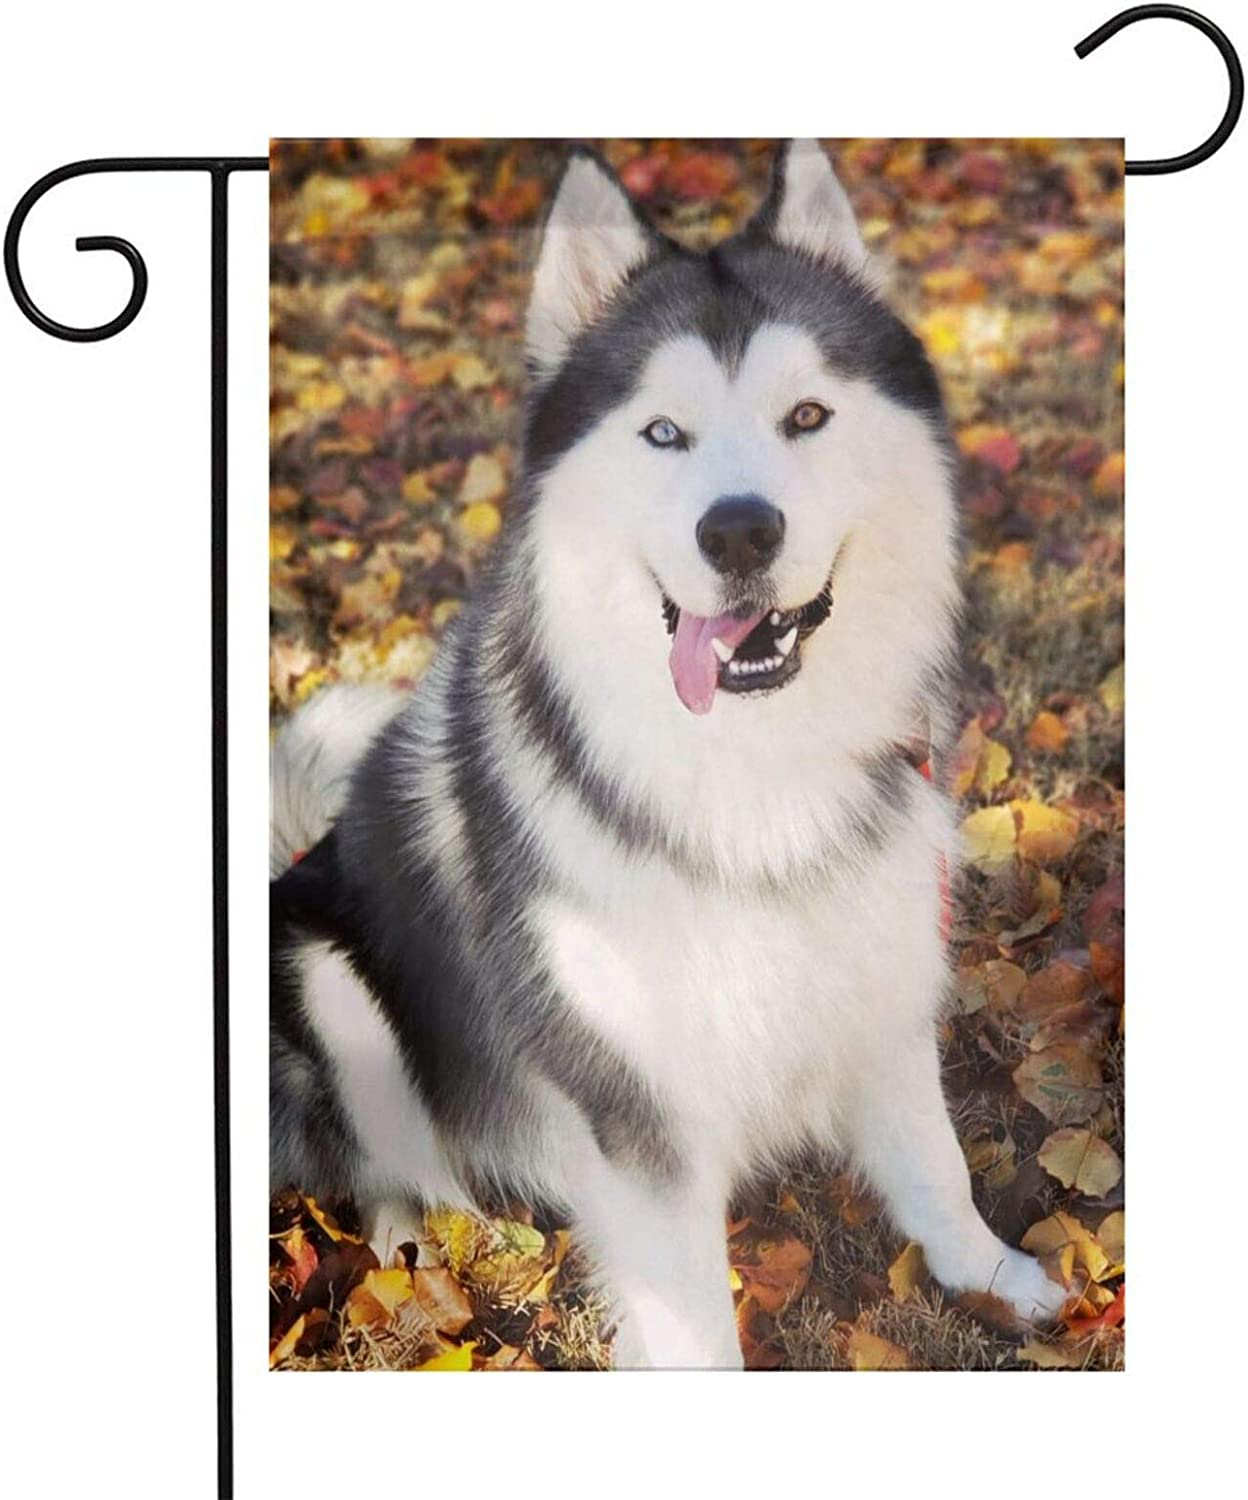 Autumn Husky Garden Flags House Indoor & Outdoor Holiday Decorations,Waterproof Polyester Yard Decorative for Game Family Party Banner